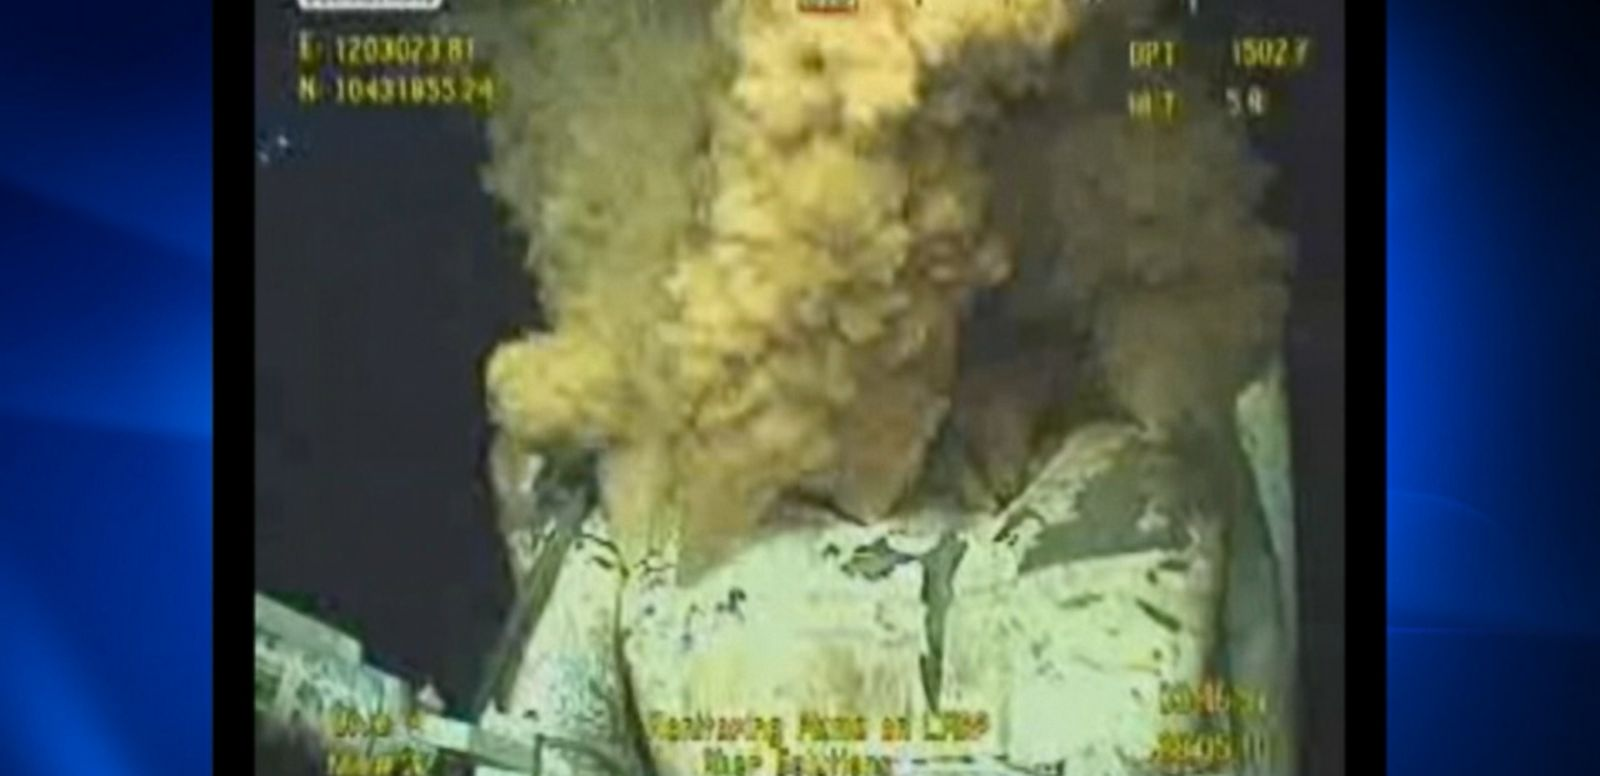 VIDEO: The record settlement comes after 134 million gallons of oil were spilled into the Gulf following the Deepwater Horizon oil rig explosion in 2010.